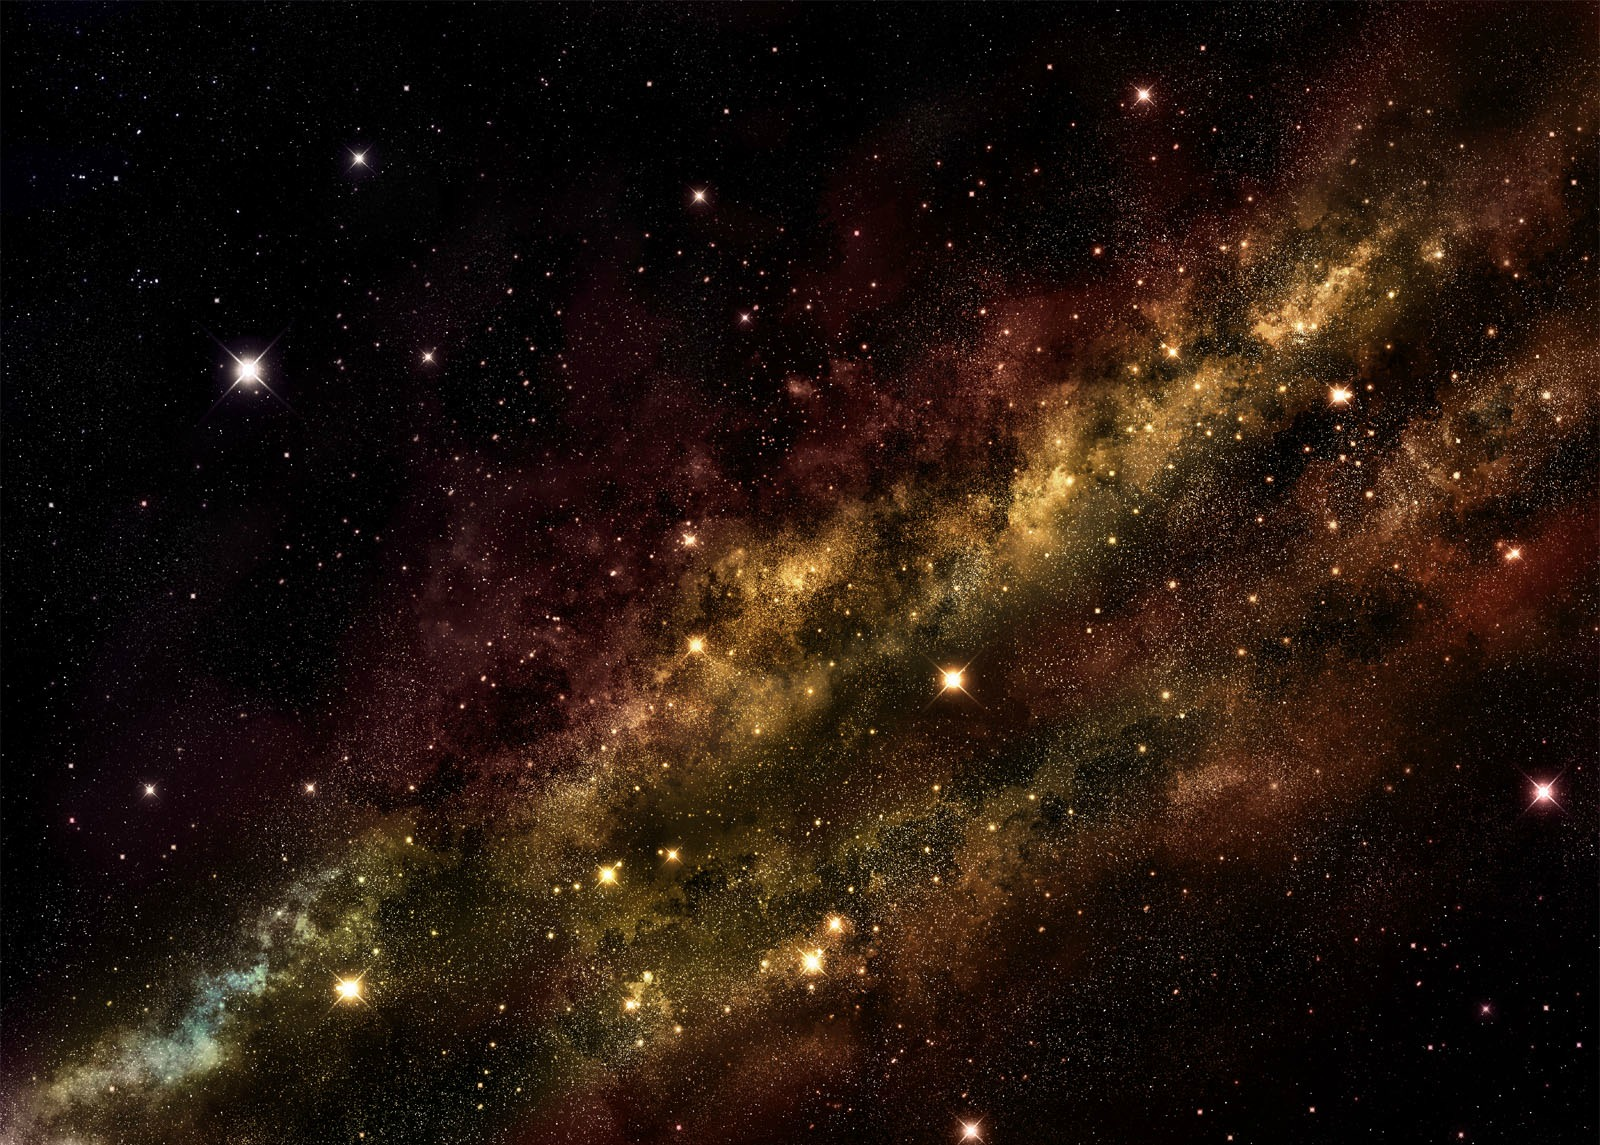 Real Space Wallpapers: Space Wallpaper And Background Image